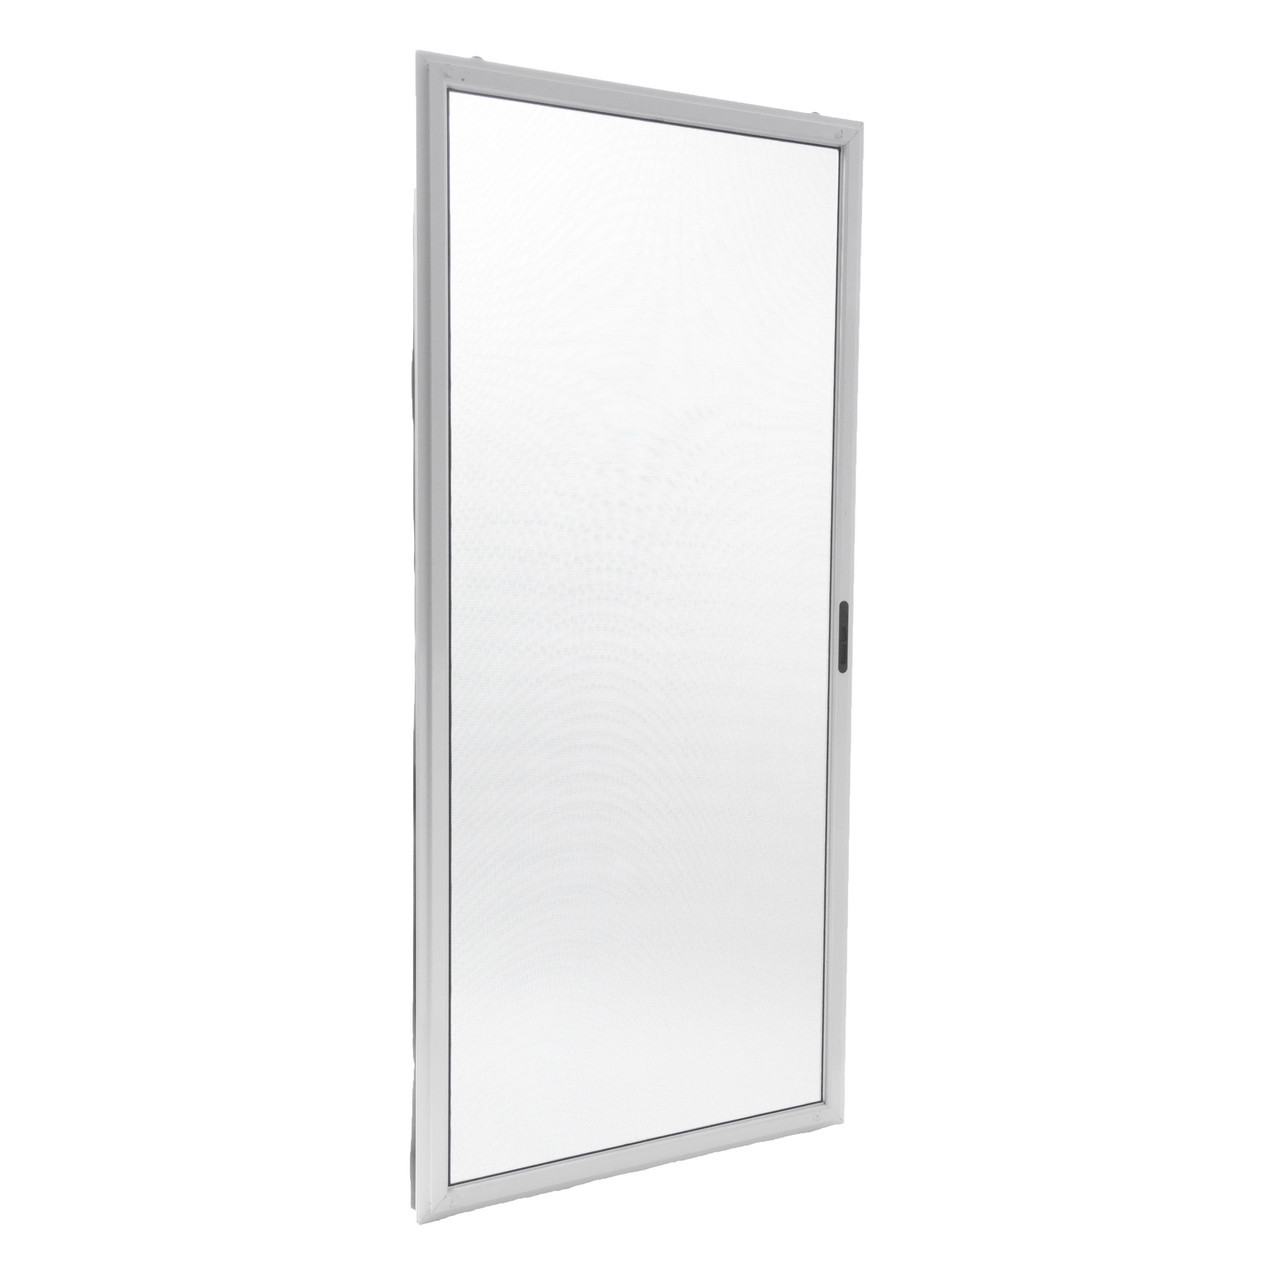 ... Hercules Sliding Screen Door- ASSEMBLED. Image 1  sc 1 st  Metro Screenworks & Sliding Patio Screen Door | Replacement Sliding Screen Doors ...